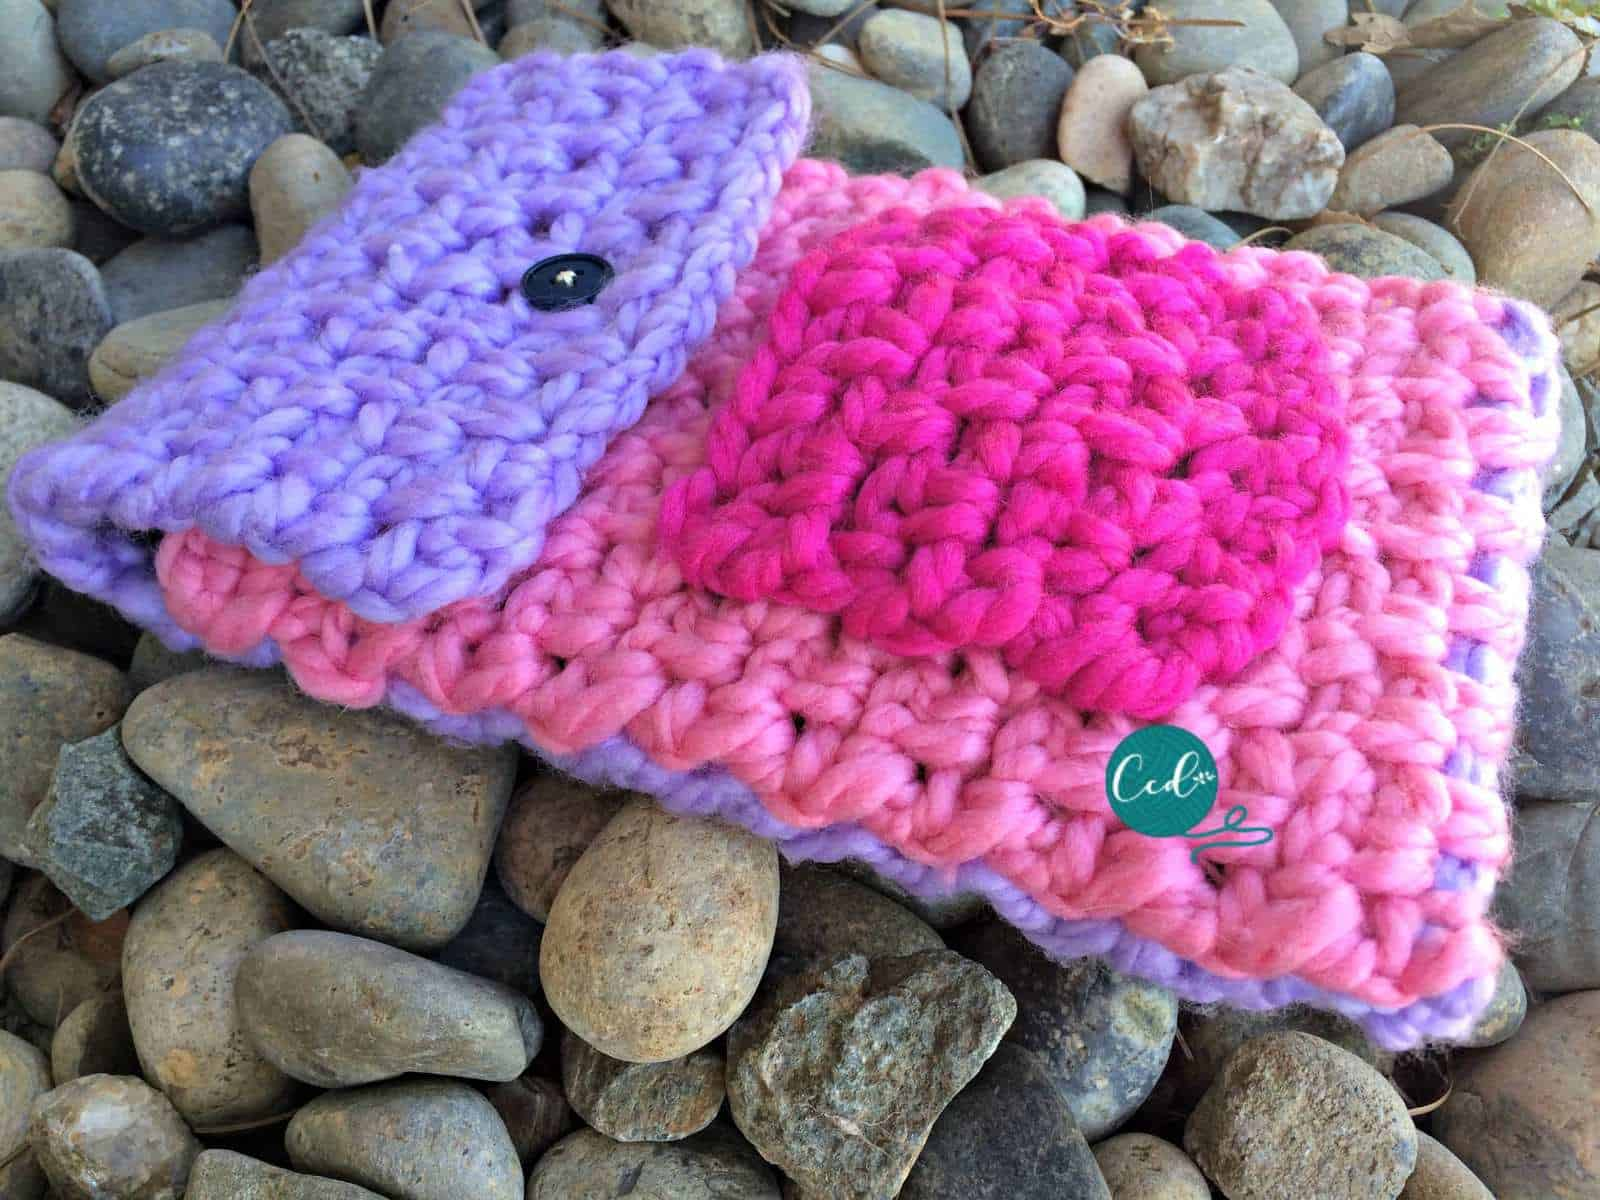 Chunky Crochet Tablet Cover Photo Tutorial